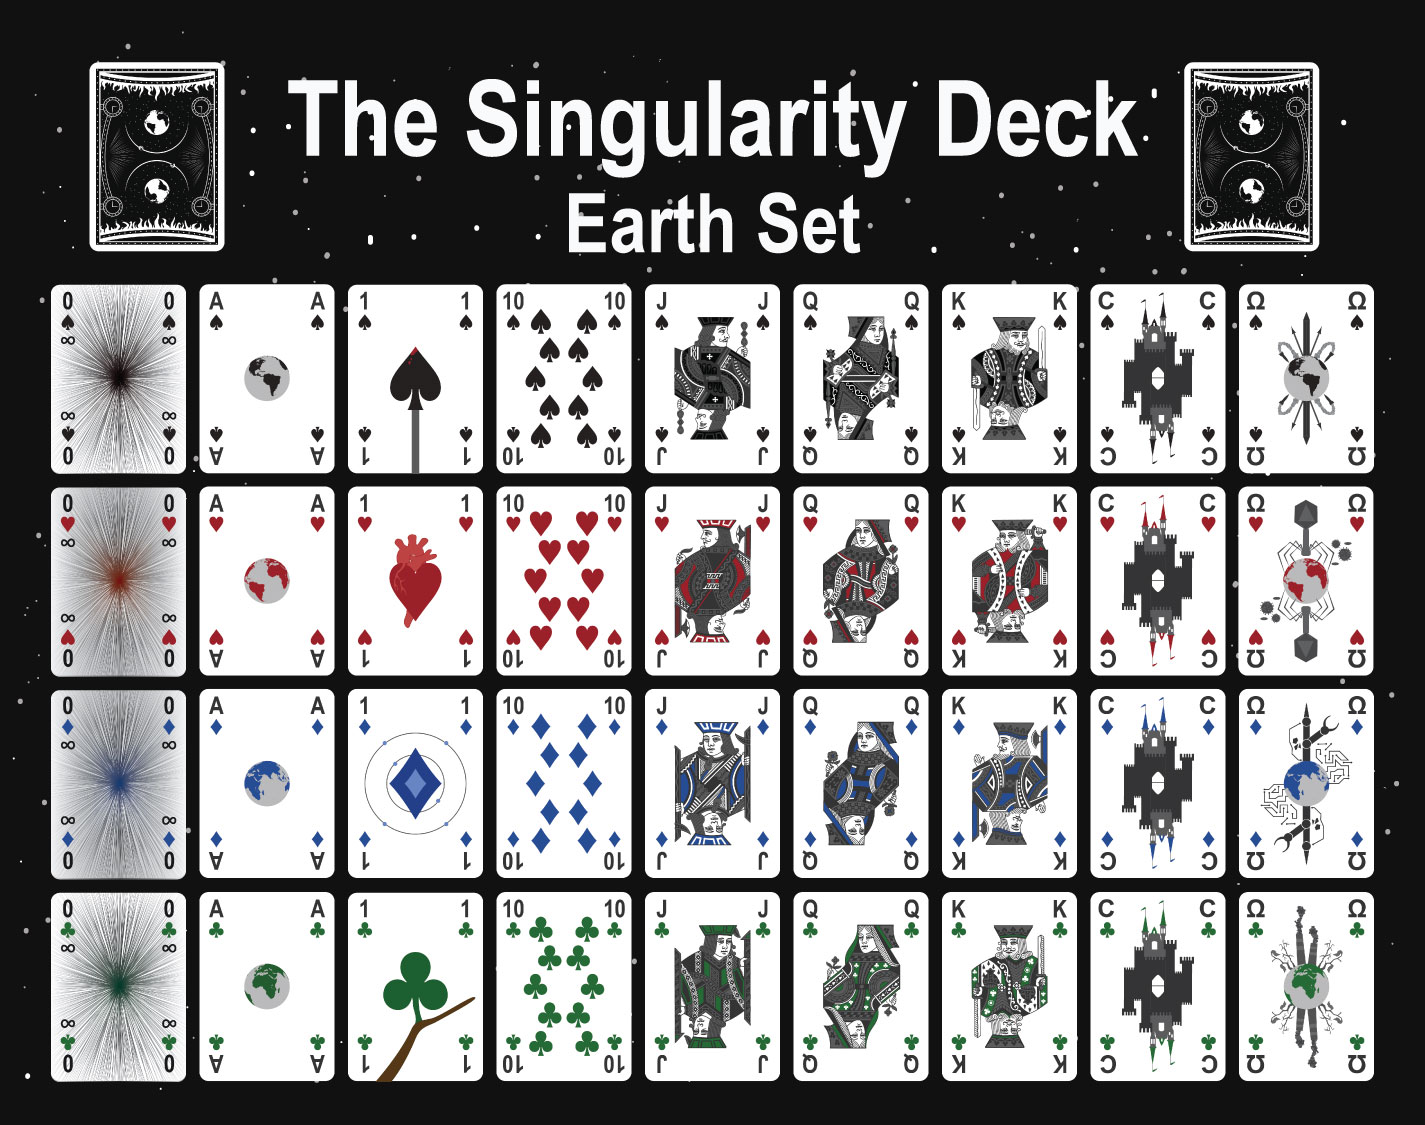 The Singularity Deck - Earth Set